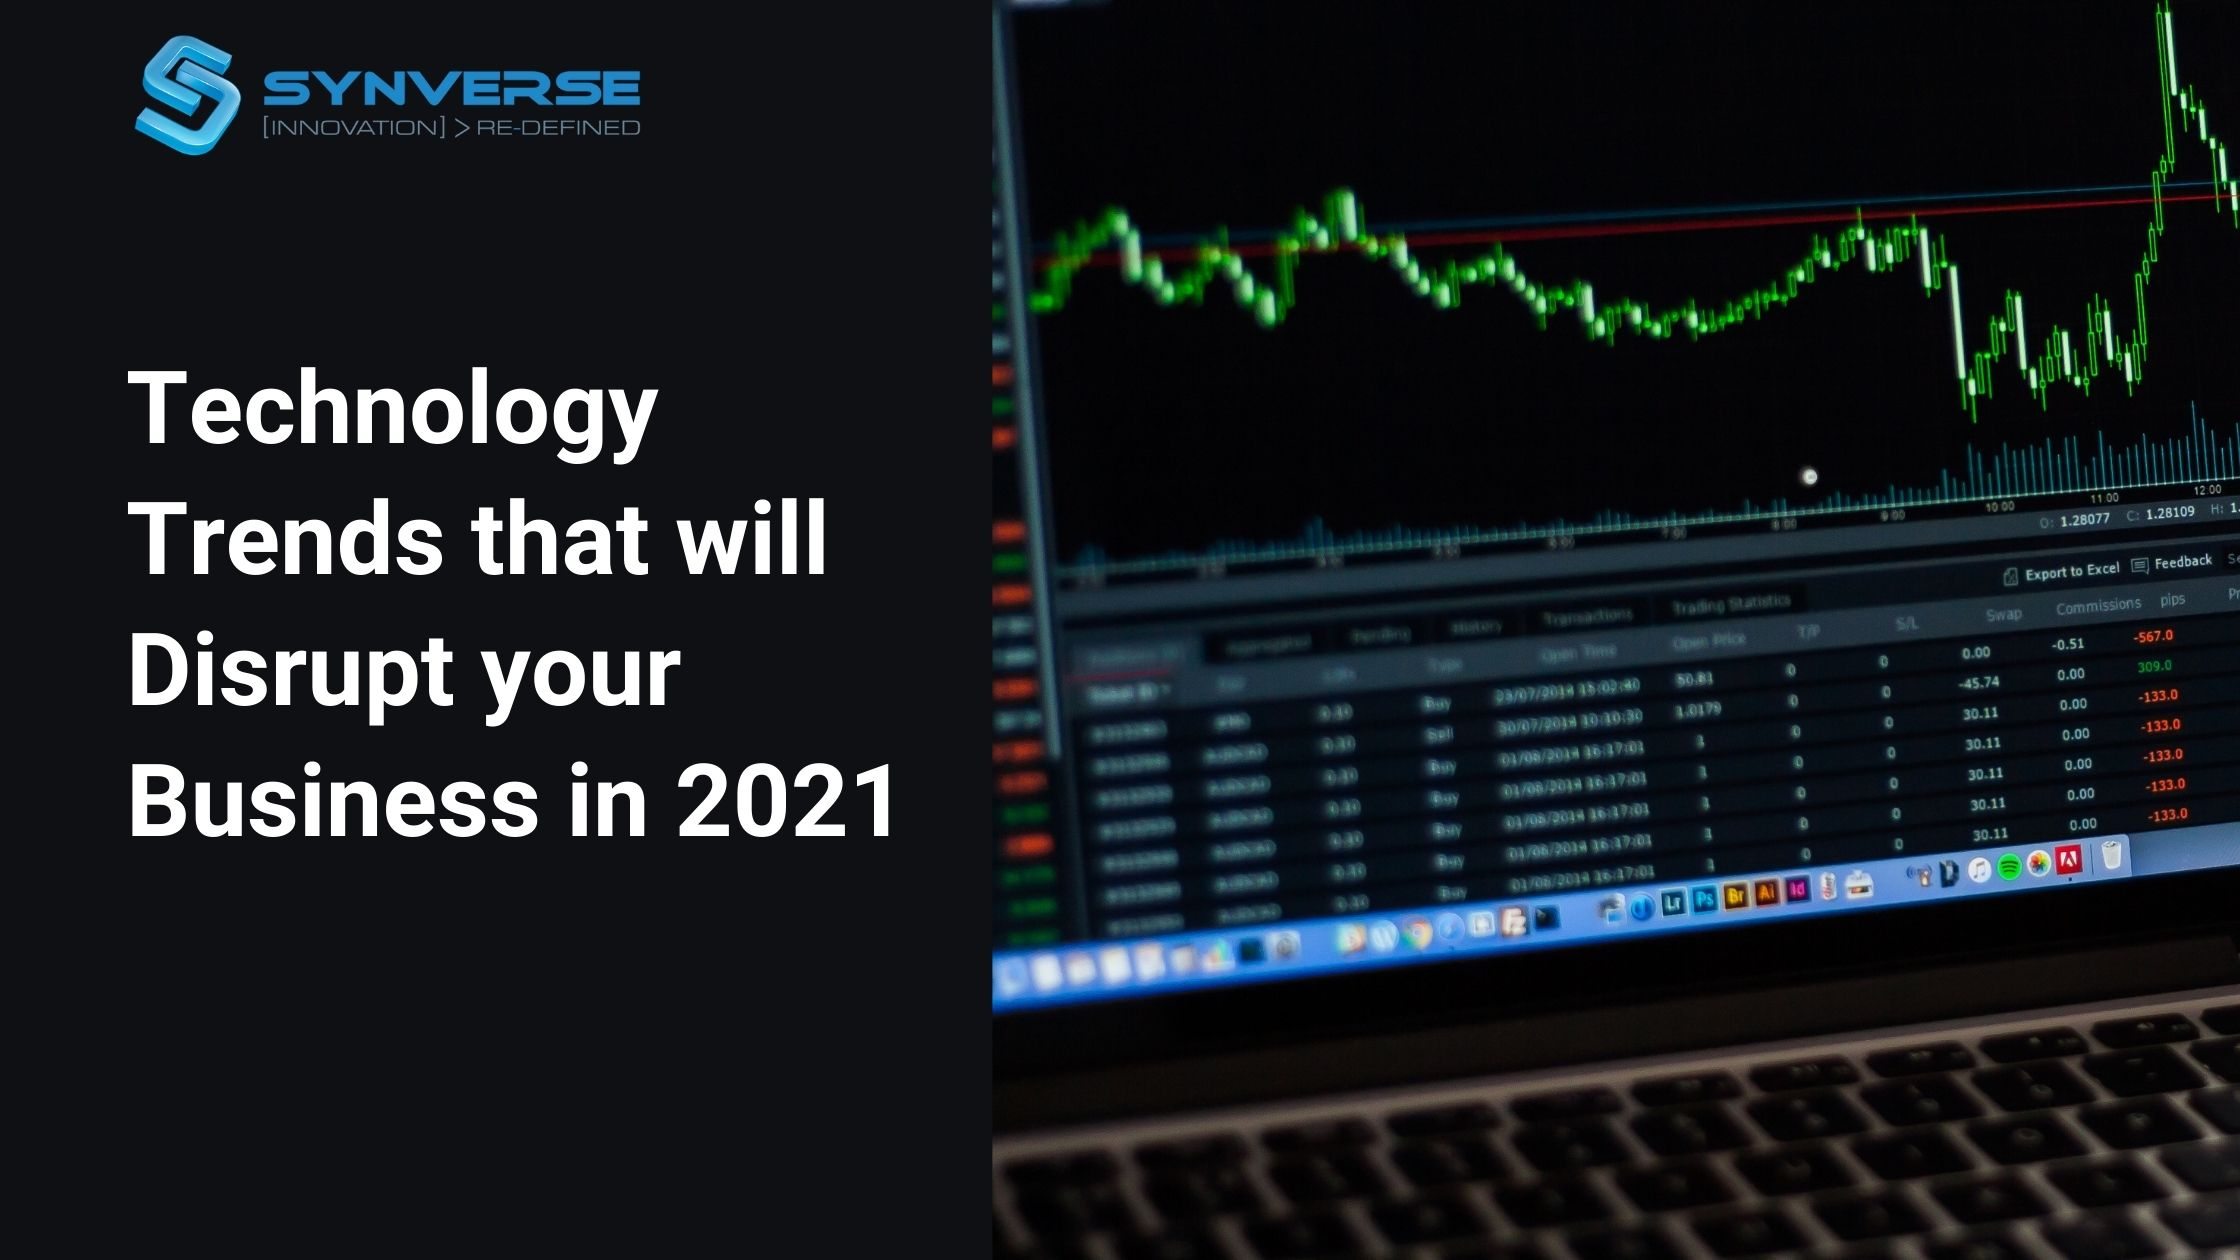 Technology Trends that will Disrupt your Business in 2021